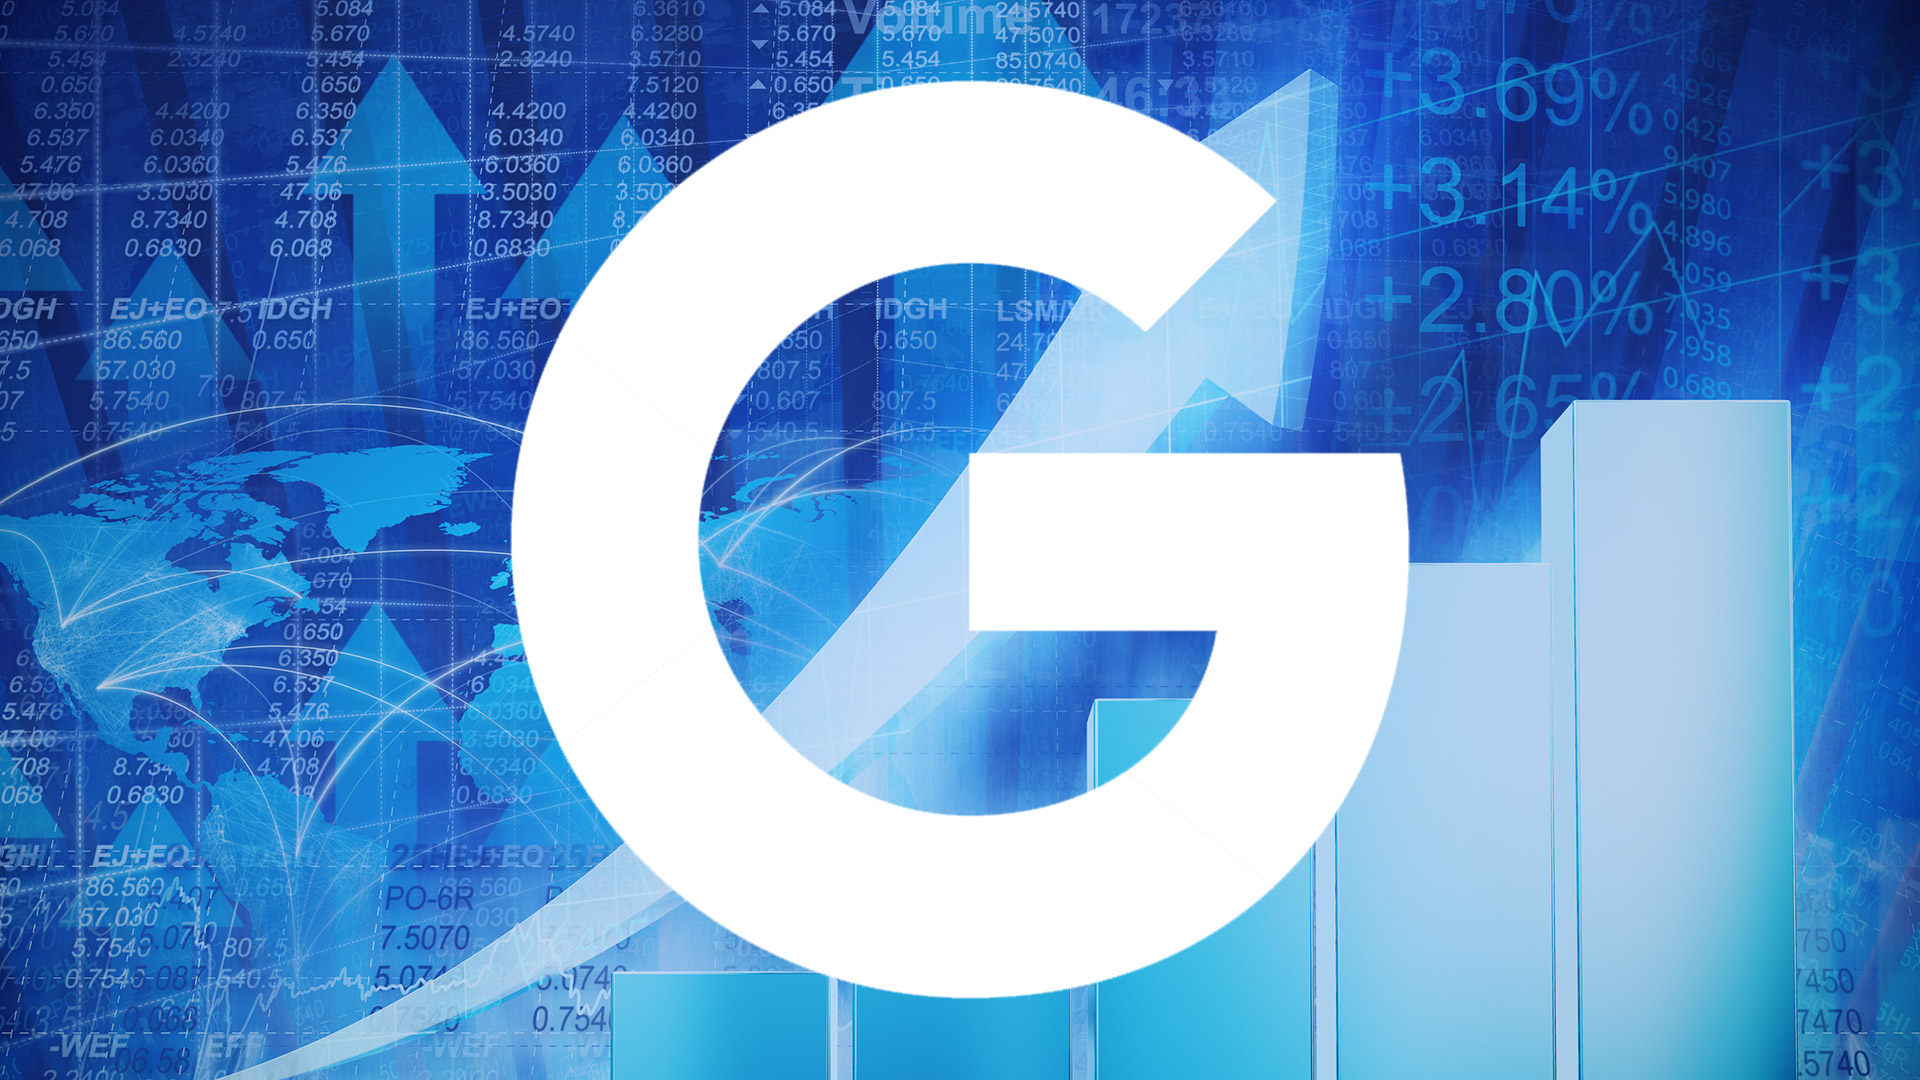 google-growth-analytics-data-increase-ss-1920